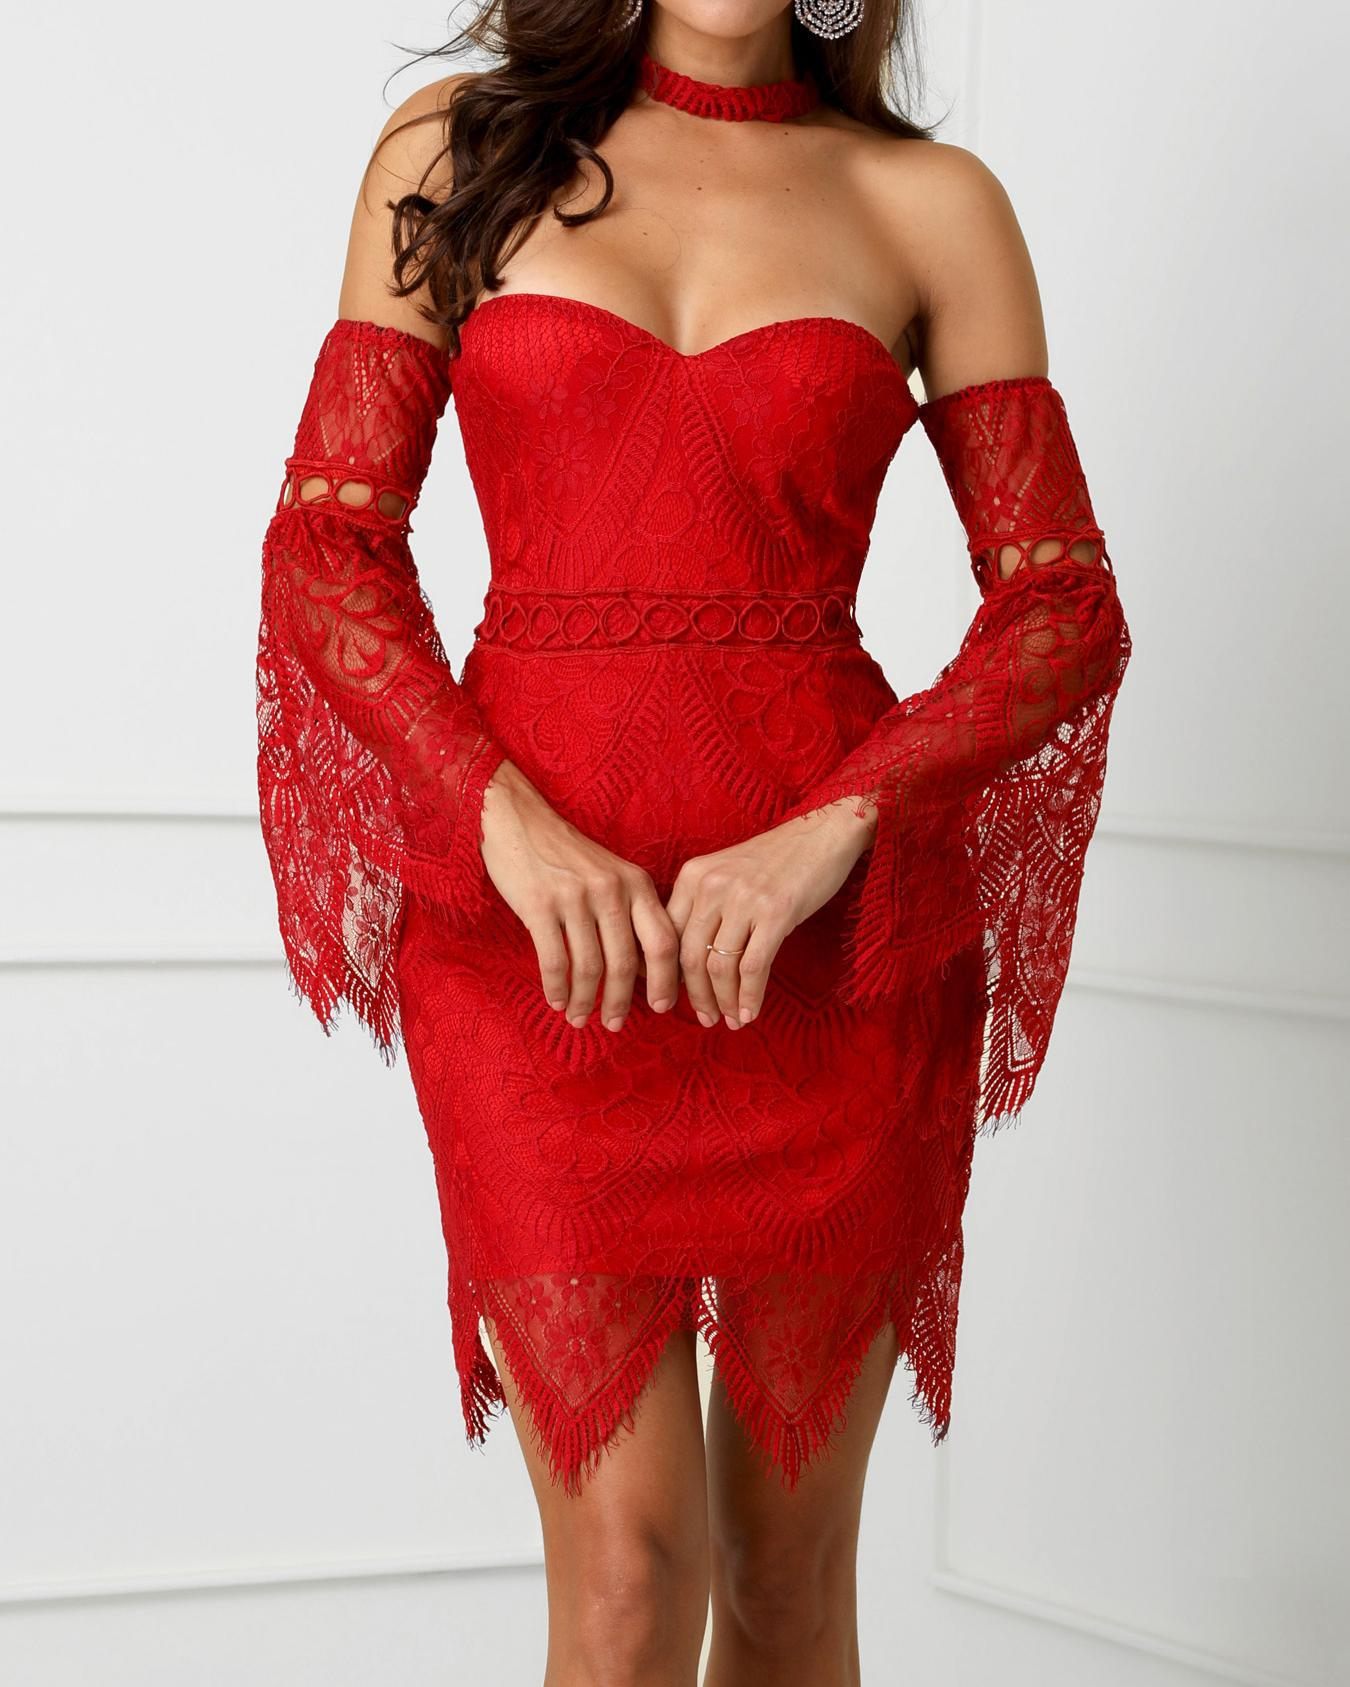 0452067c6e7 Off Shoulder Bell Sleeve Eyelash Lace Dress Online. Discover hottest trend  fashion at chicme.com